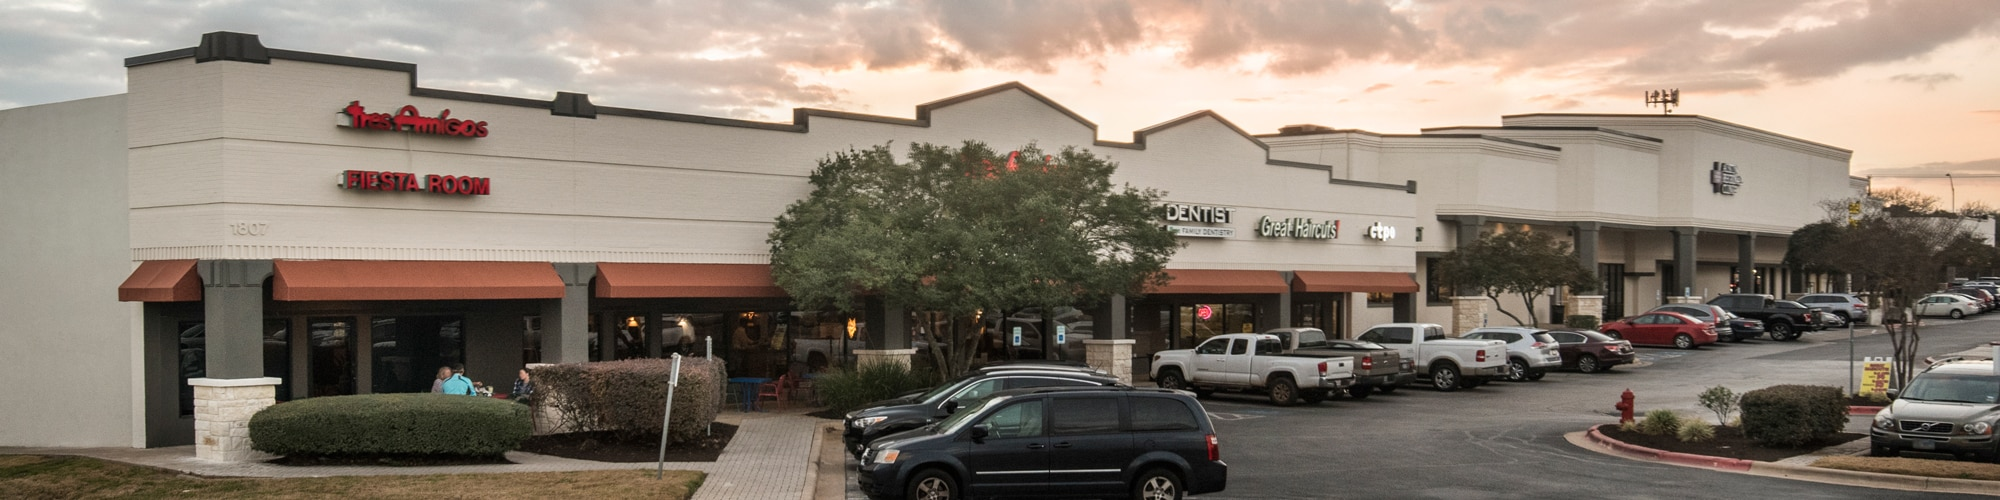 The Market at Slaughter Retail Center East End | 1807 West Slaughter Lane in Austin, Texas